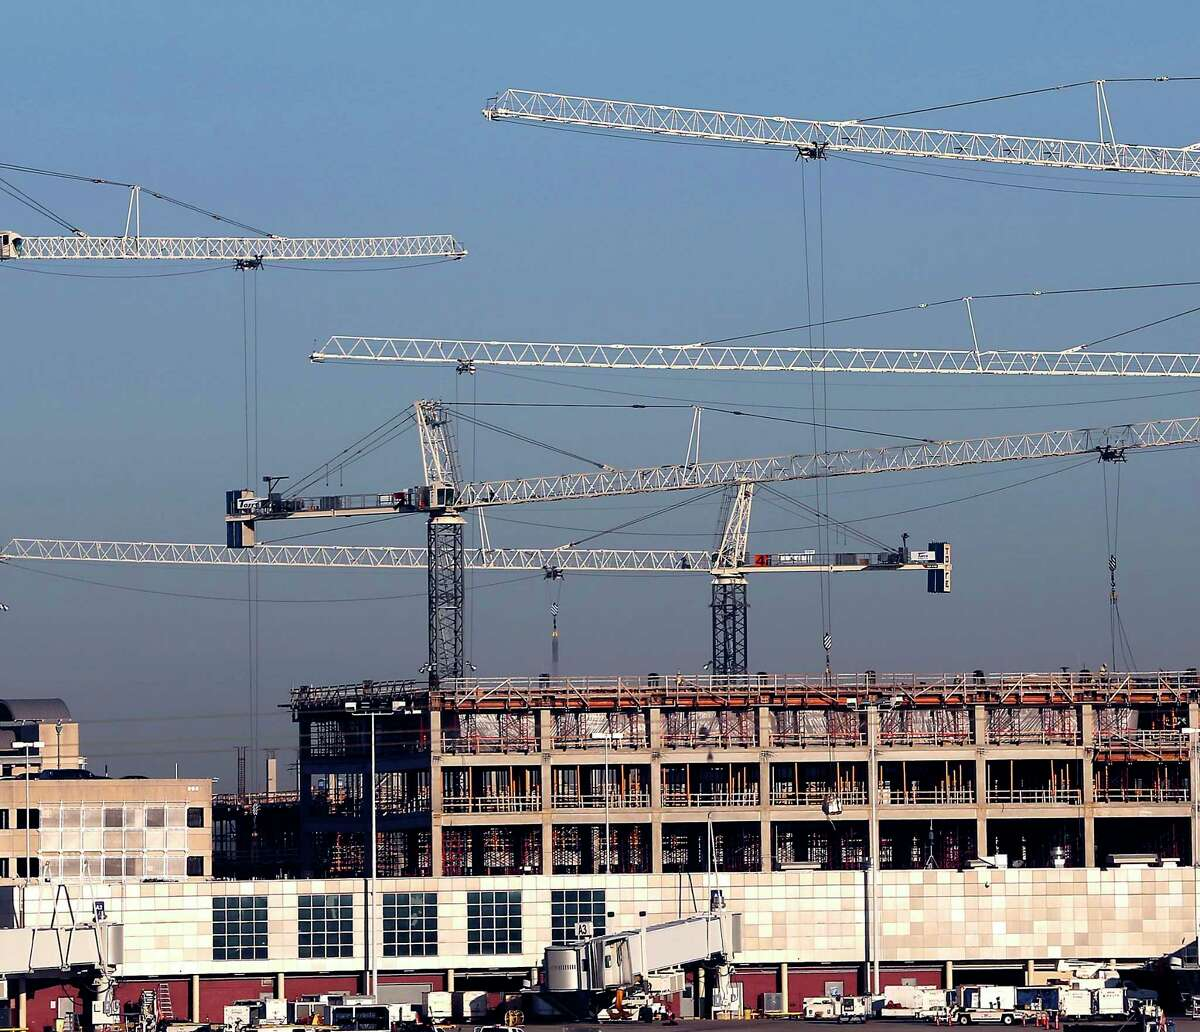 The booms from five tower cranes are seen Wednesday, Dec, 21, 2016 at the San Antonio International Airport as they help construct improvements at the airport, such as a new parking garage seen in the image.